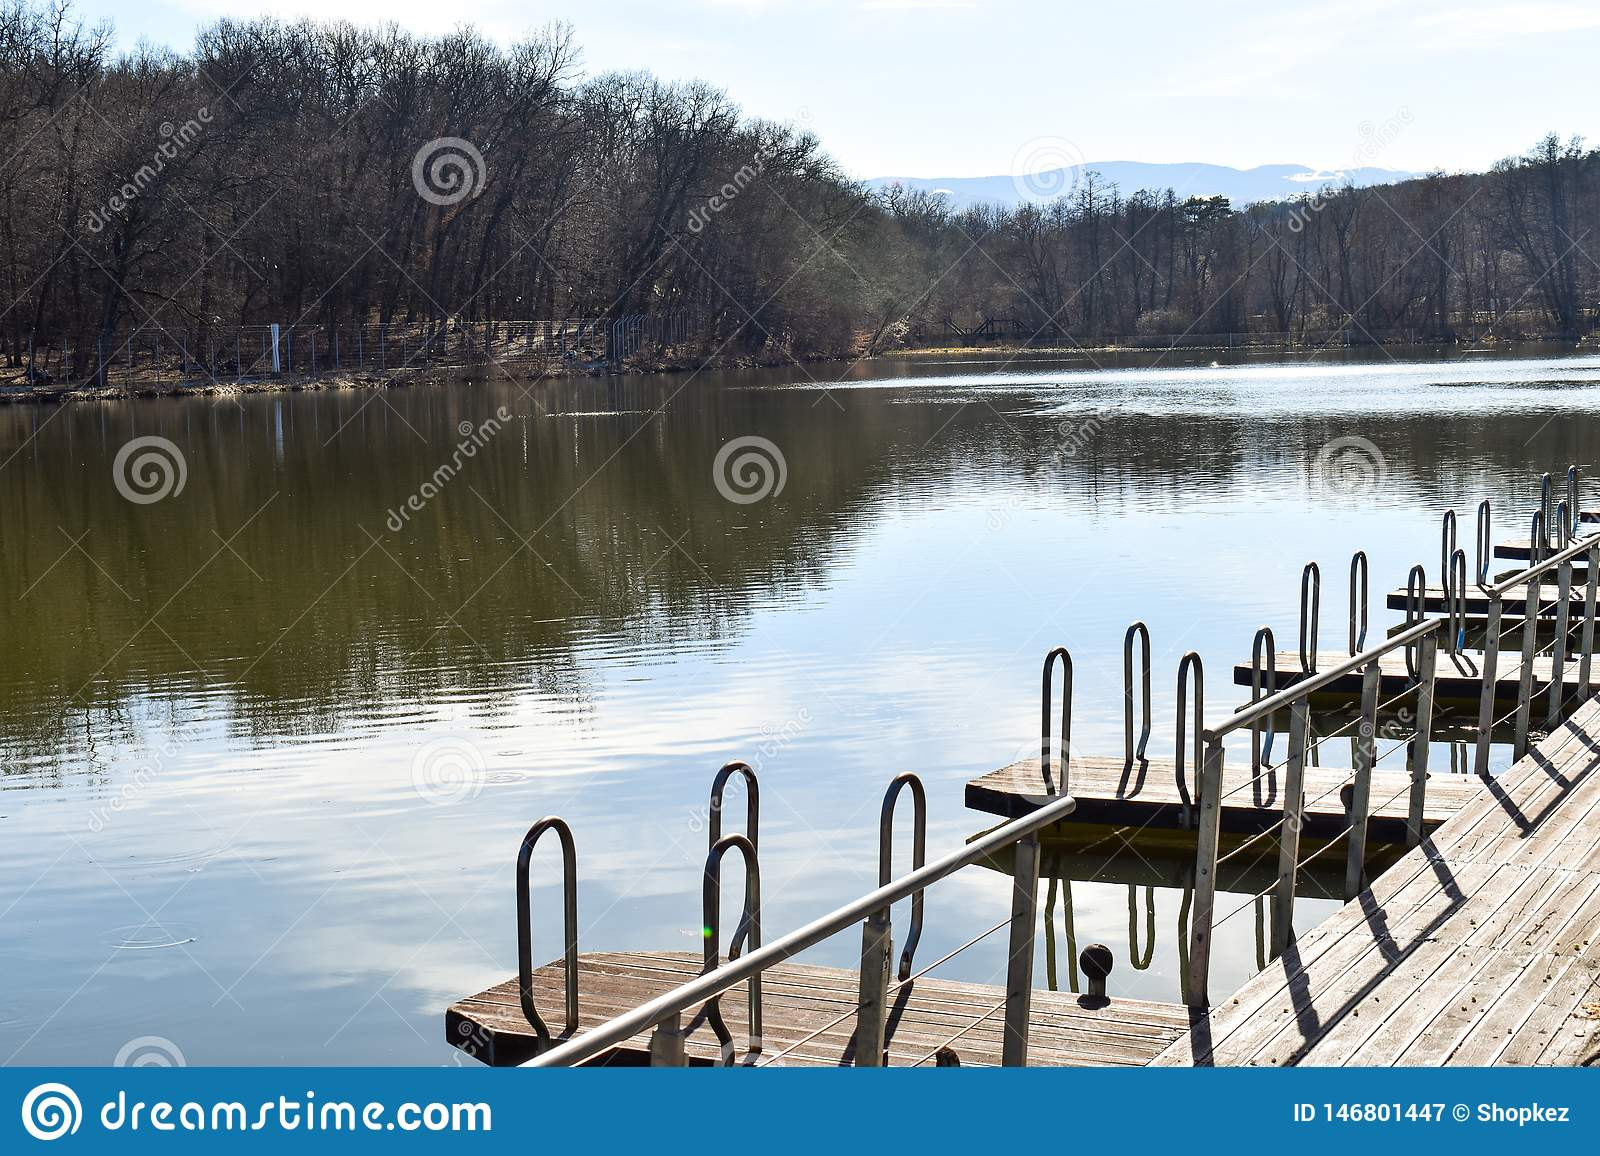 Pontoon wooden jetty pier for boat mooring marina on the park lake